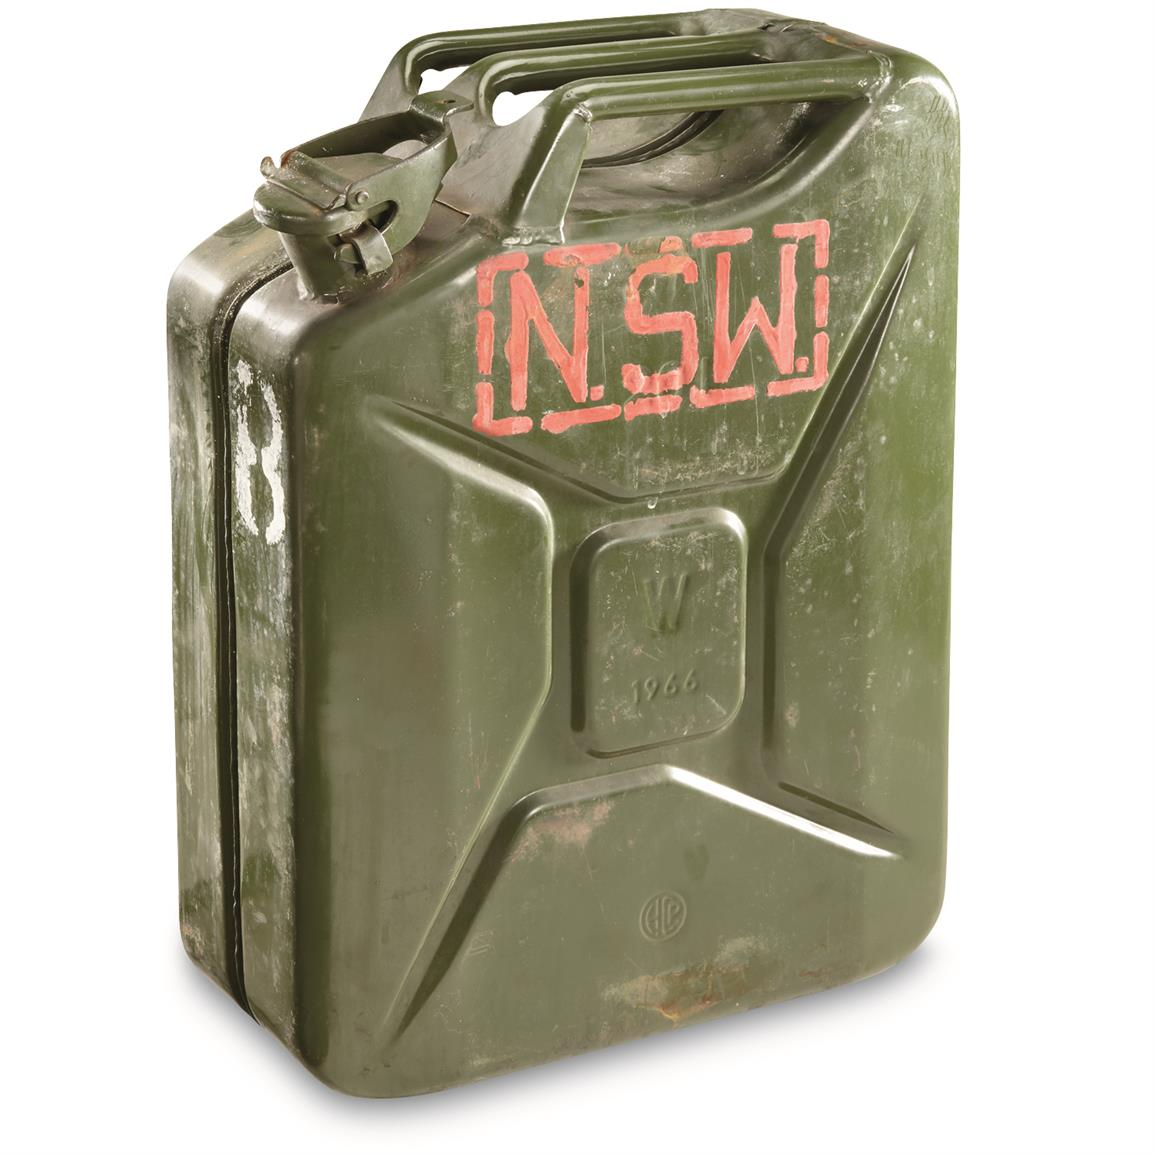 NATO Military Surplus 20L Steel Jerry Can, Used